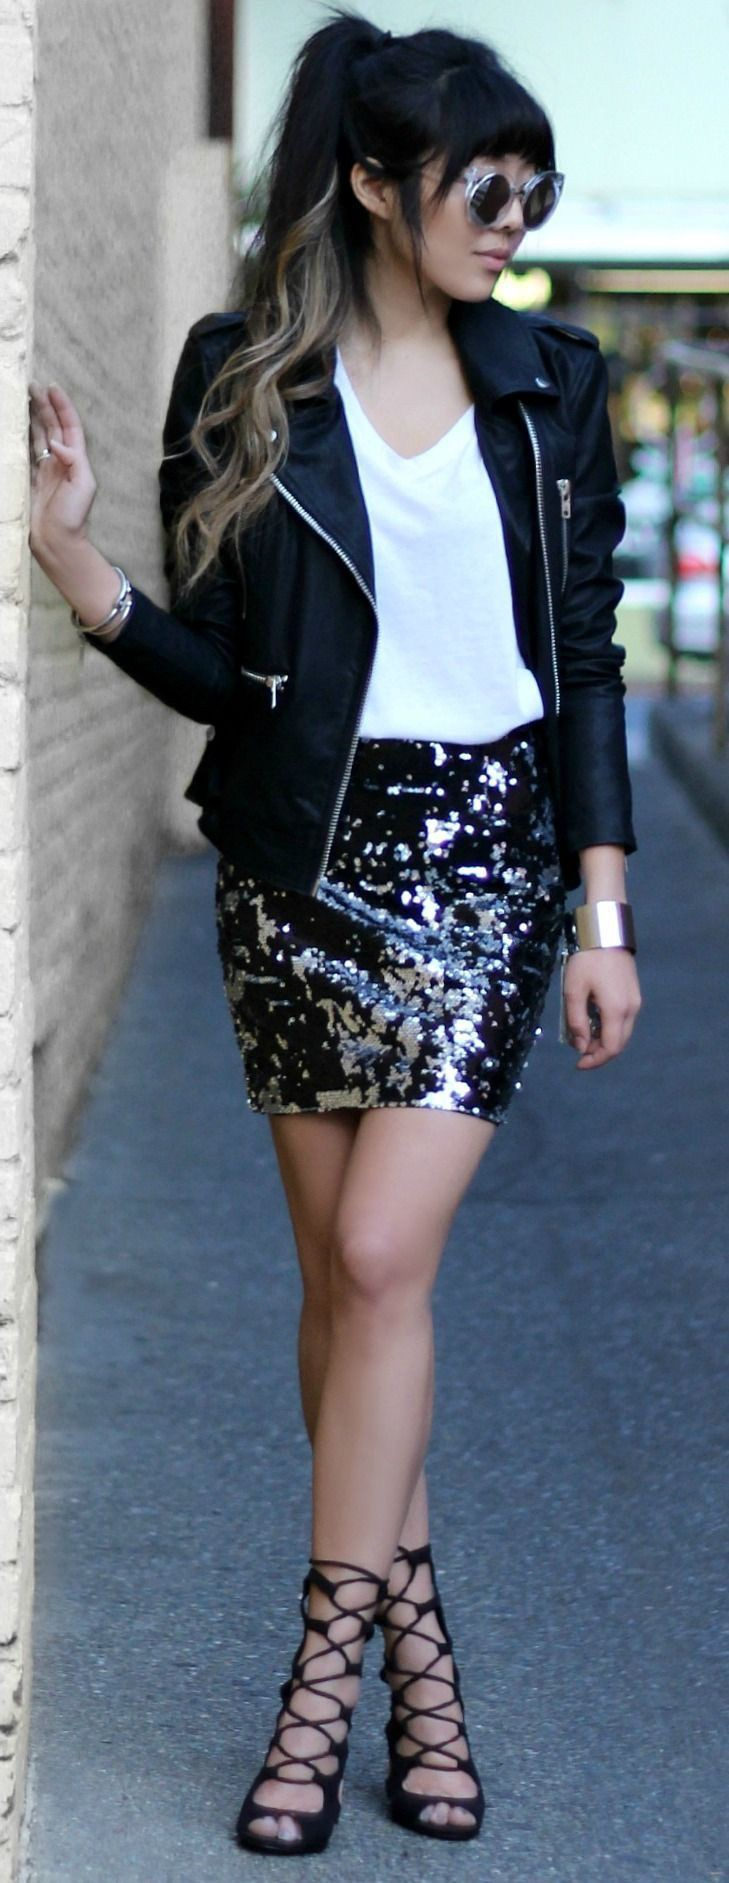 Outfit falda brillosa negra, leather jacket, street fashion, casual wear, t shirt